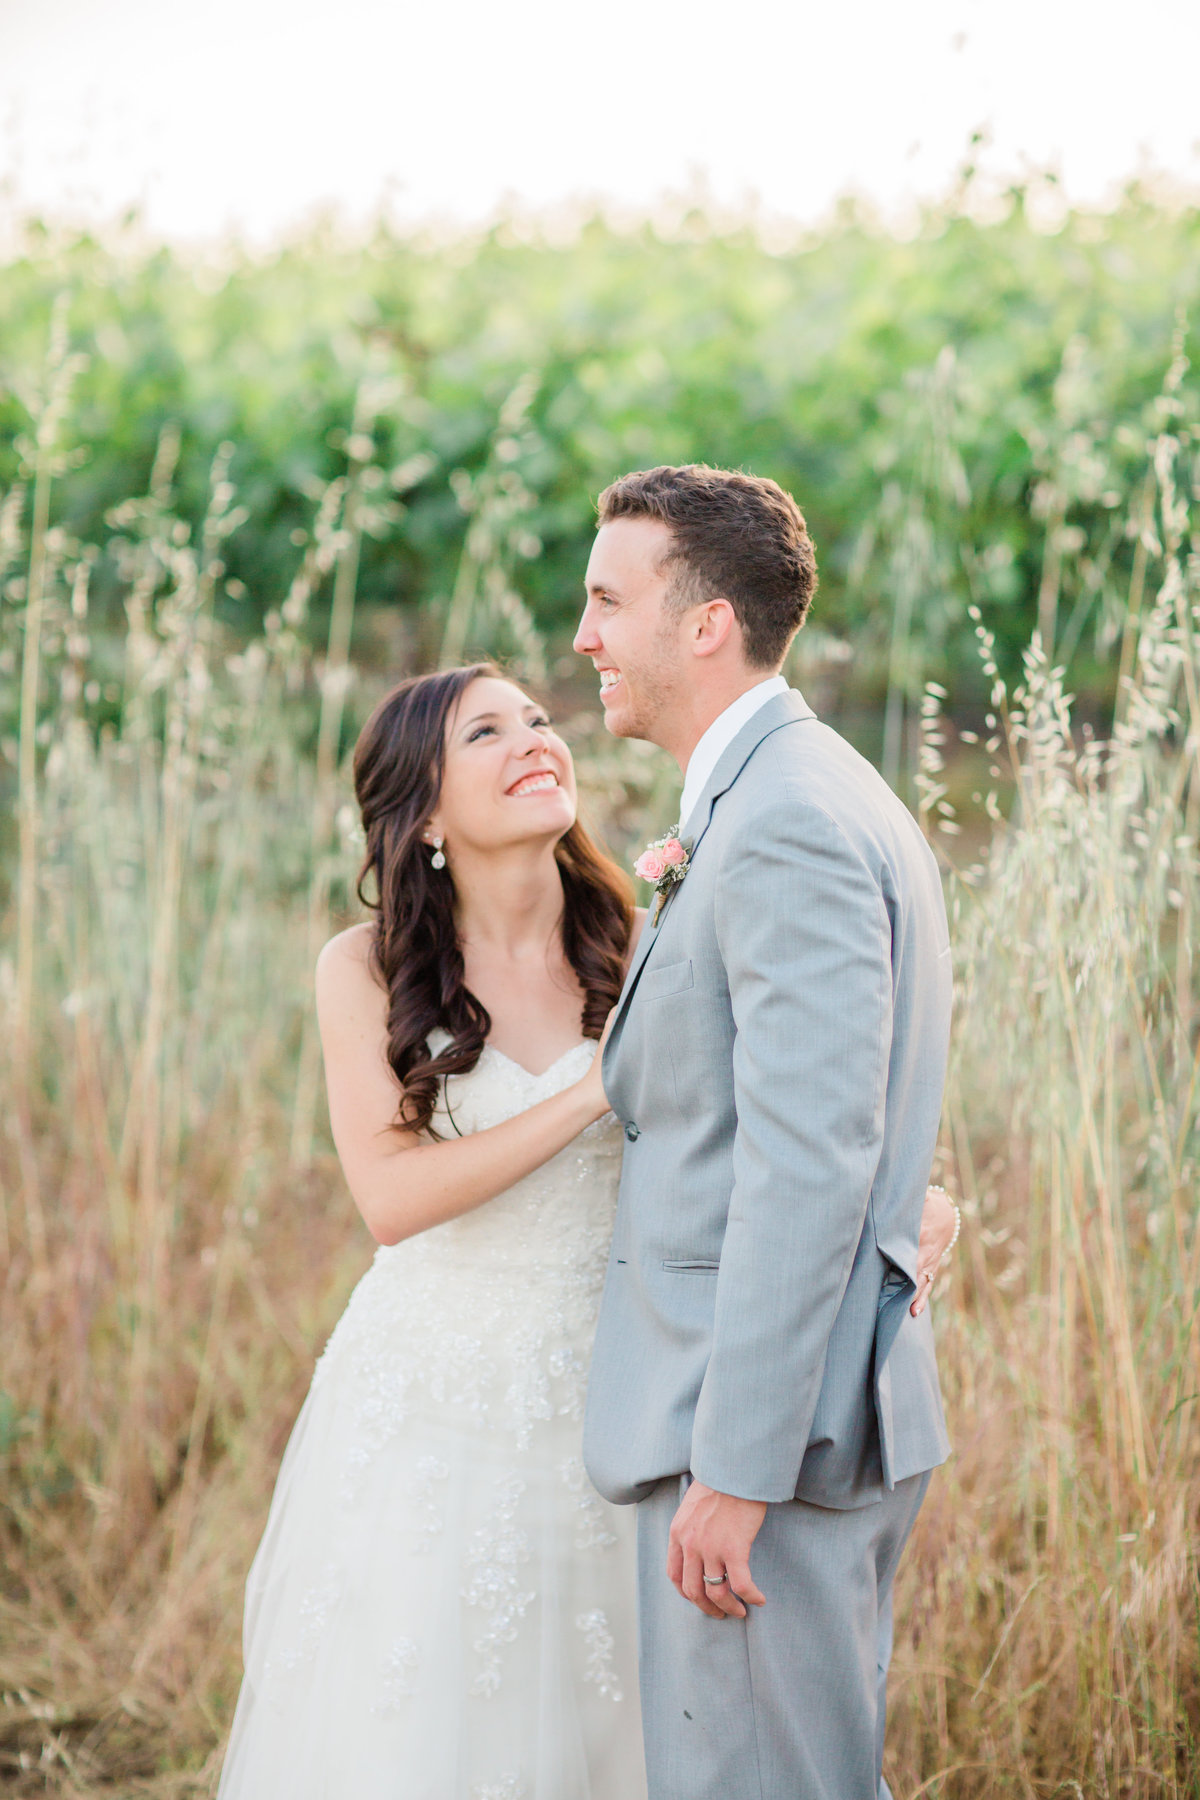 Carissa and Tyler Sneak Peek | California Wedding Photographer | Katie Schoepflin Photography 2018.16